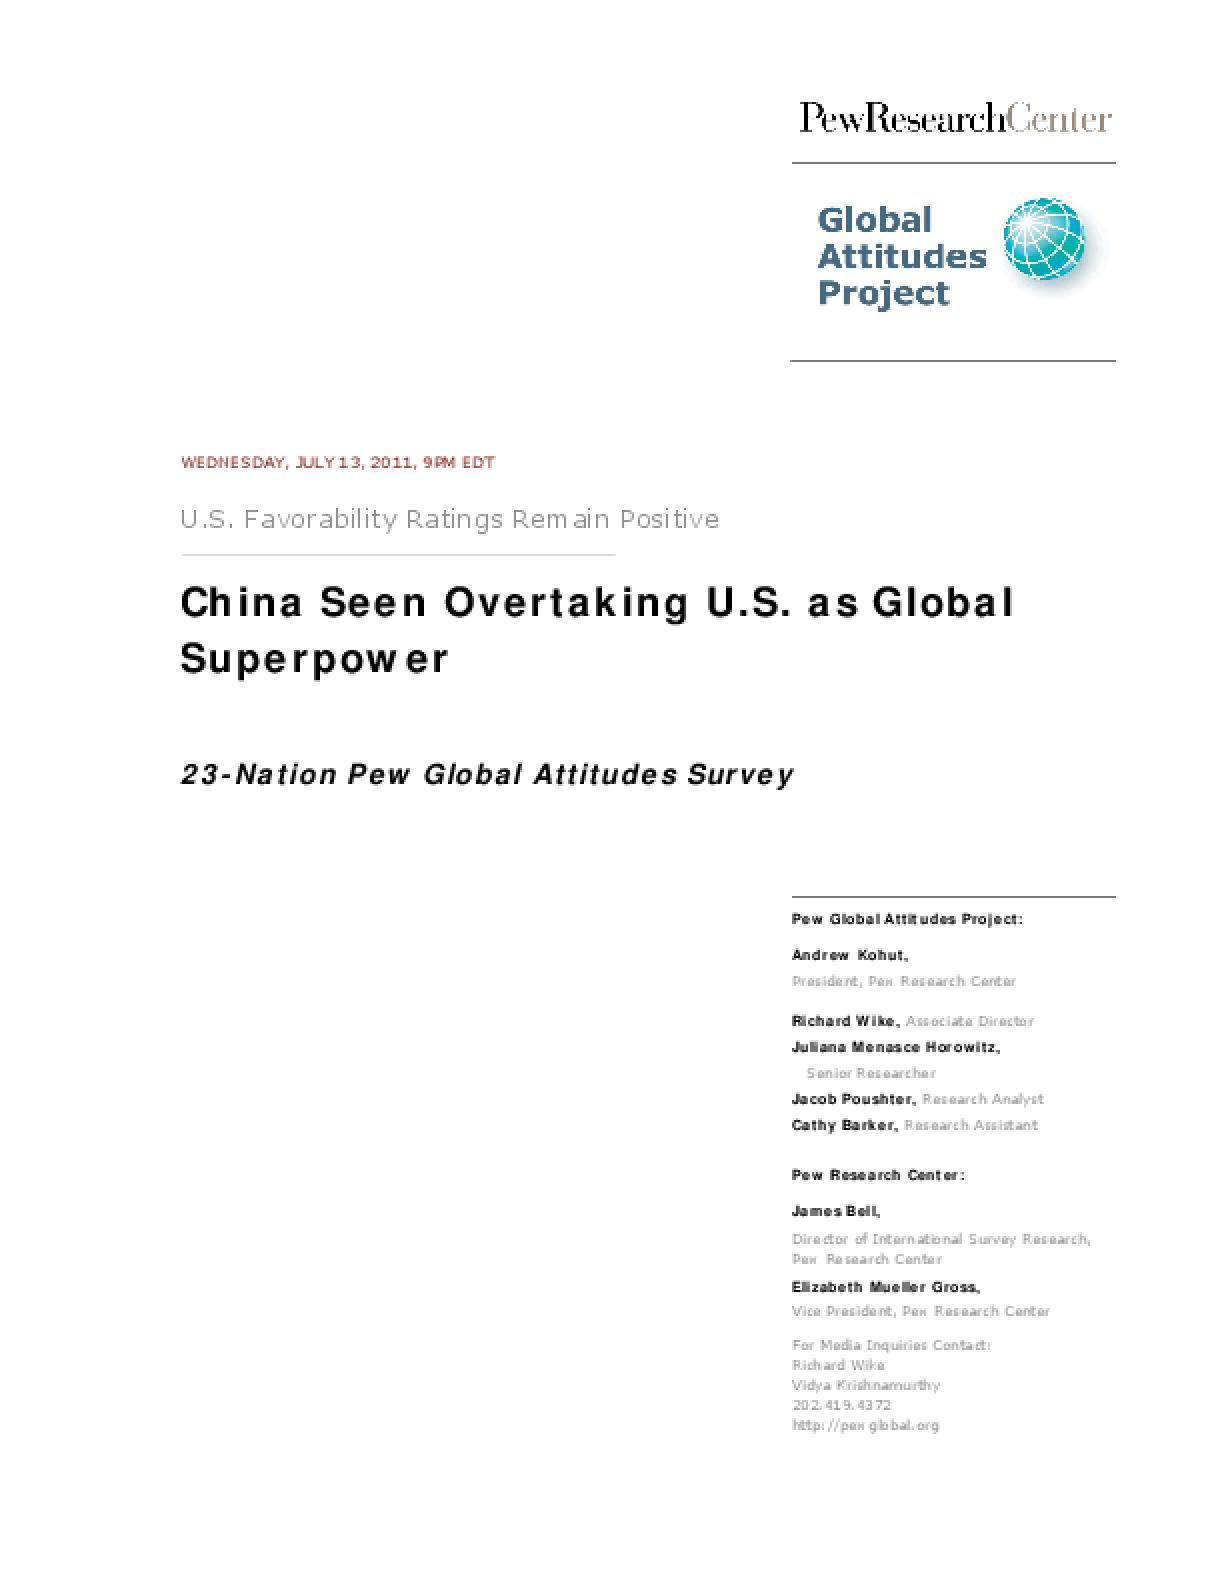 23-Nation Pew Global Attitudes Survey: China Seen Overtaking U.S. as Global Superpower